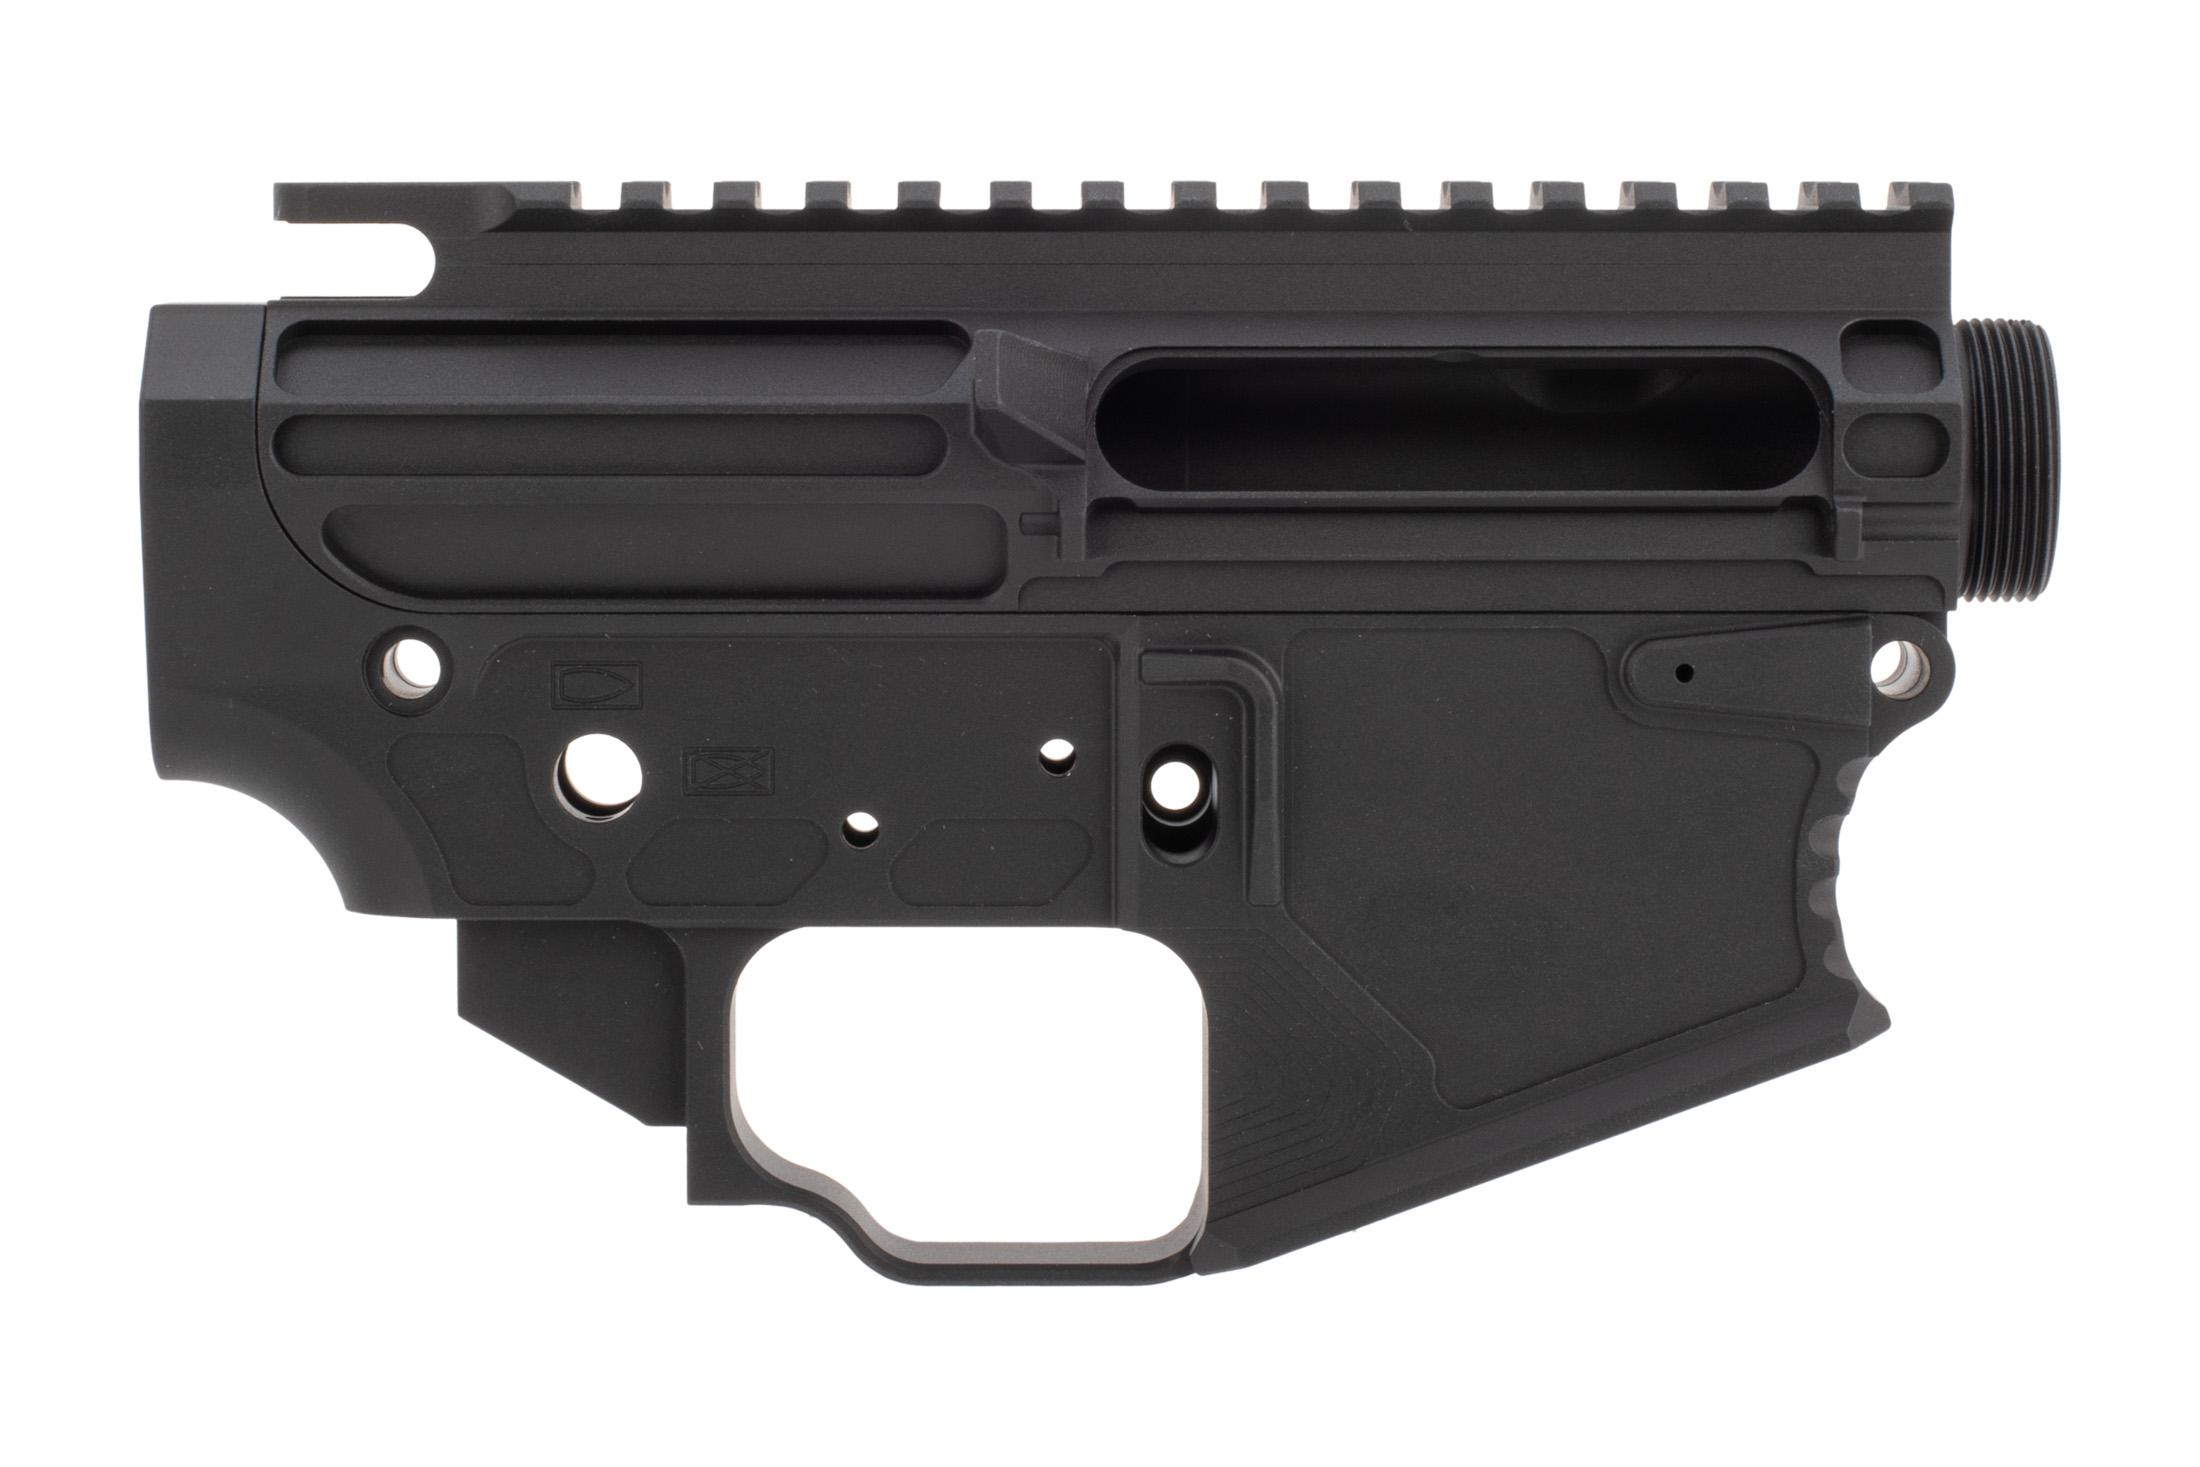 The Next Level Armament NLX-15 stripped receiver set features a mil-spec anodized black finish